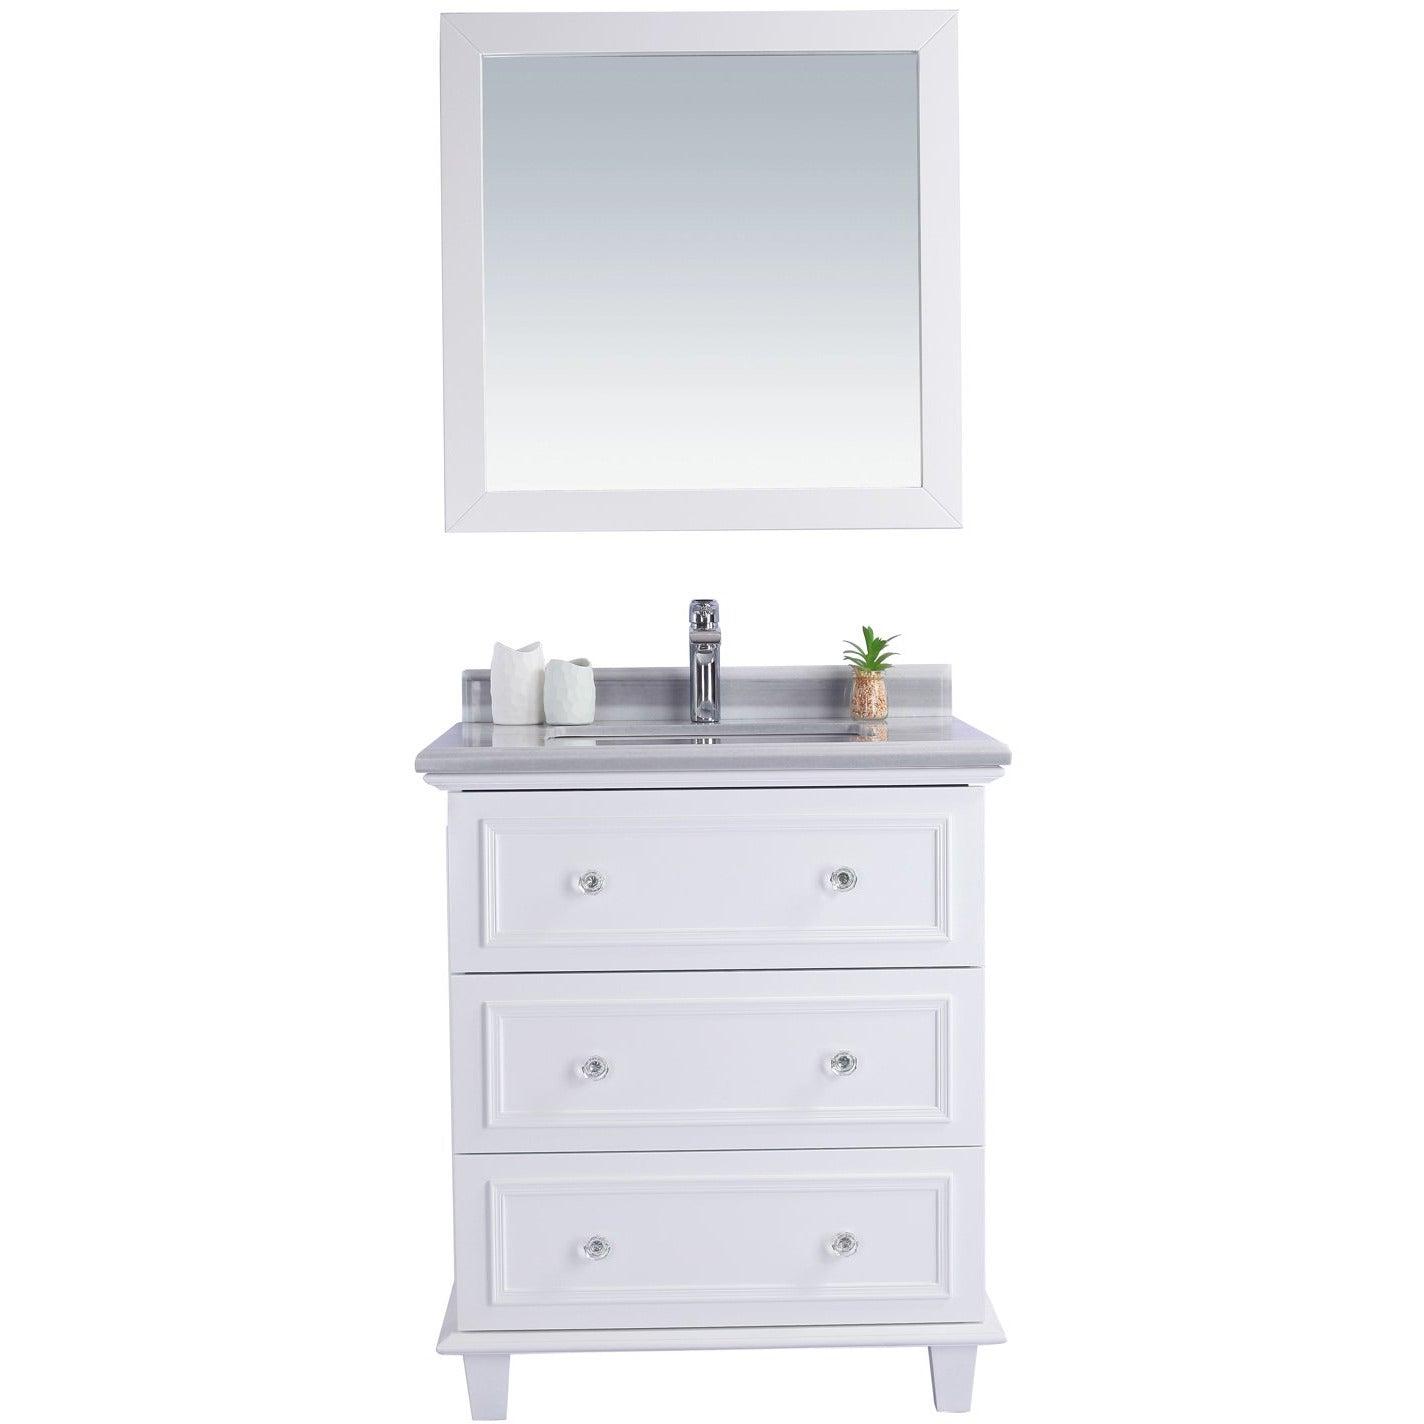 Luna - 30 - White Vanity and White Stripes Counter by Laviva